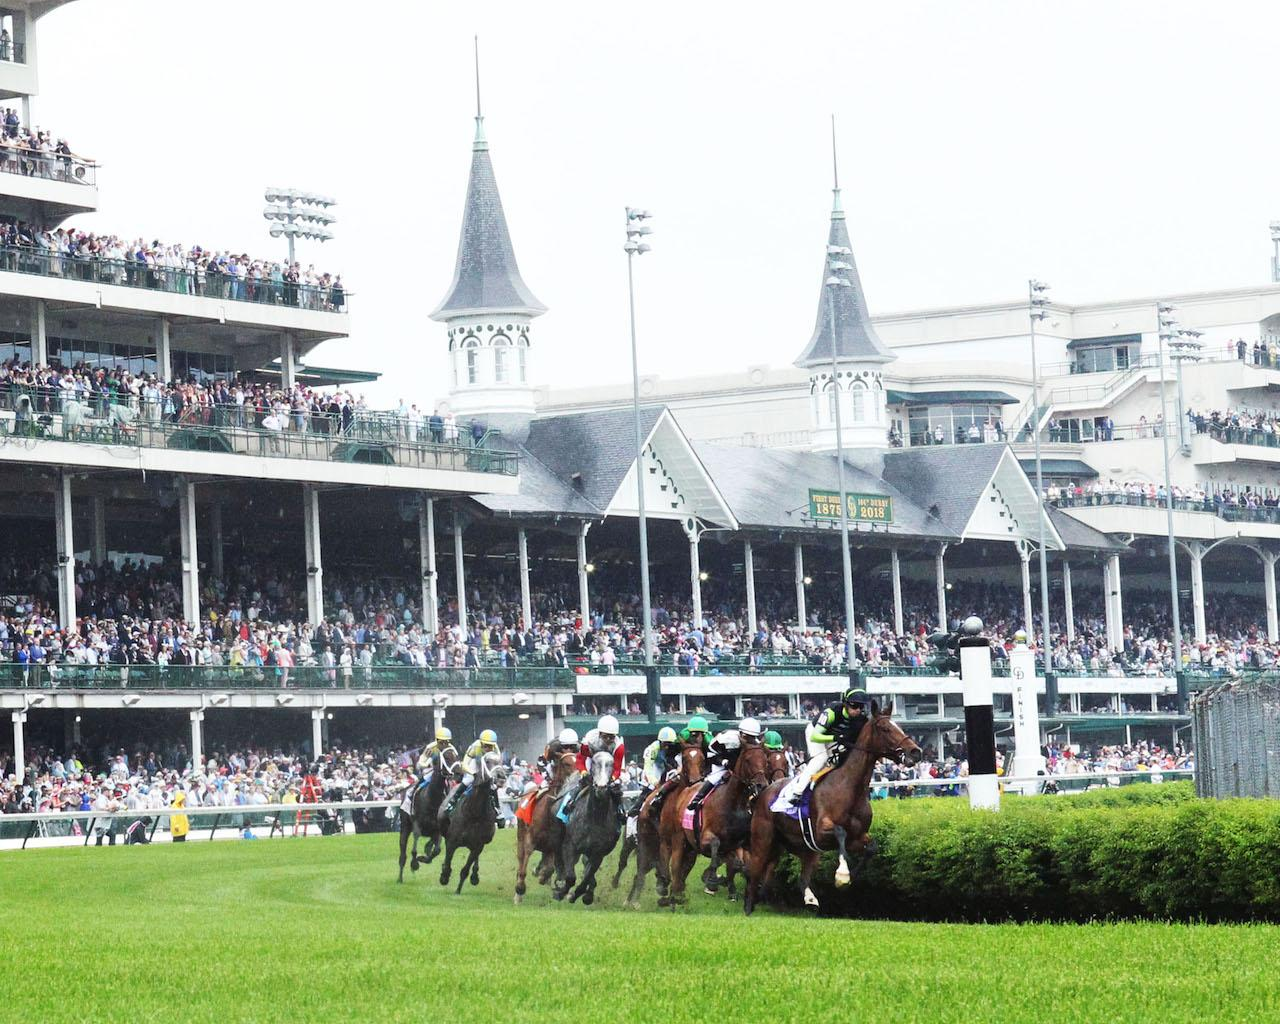 PROCTOR'S LEDGE - The Longines Churchill Distaff Turf Mile G2 - 33rd Running - 05-05-18 - R07 - CD - Sweeping Turn 01